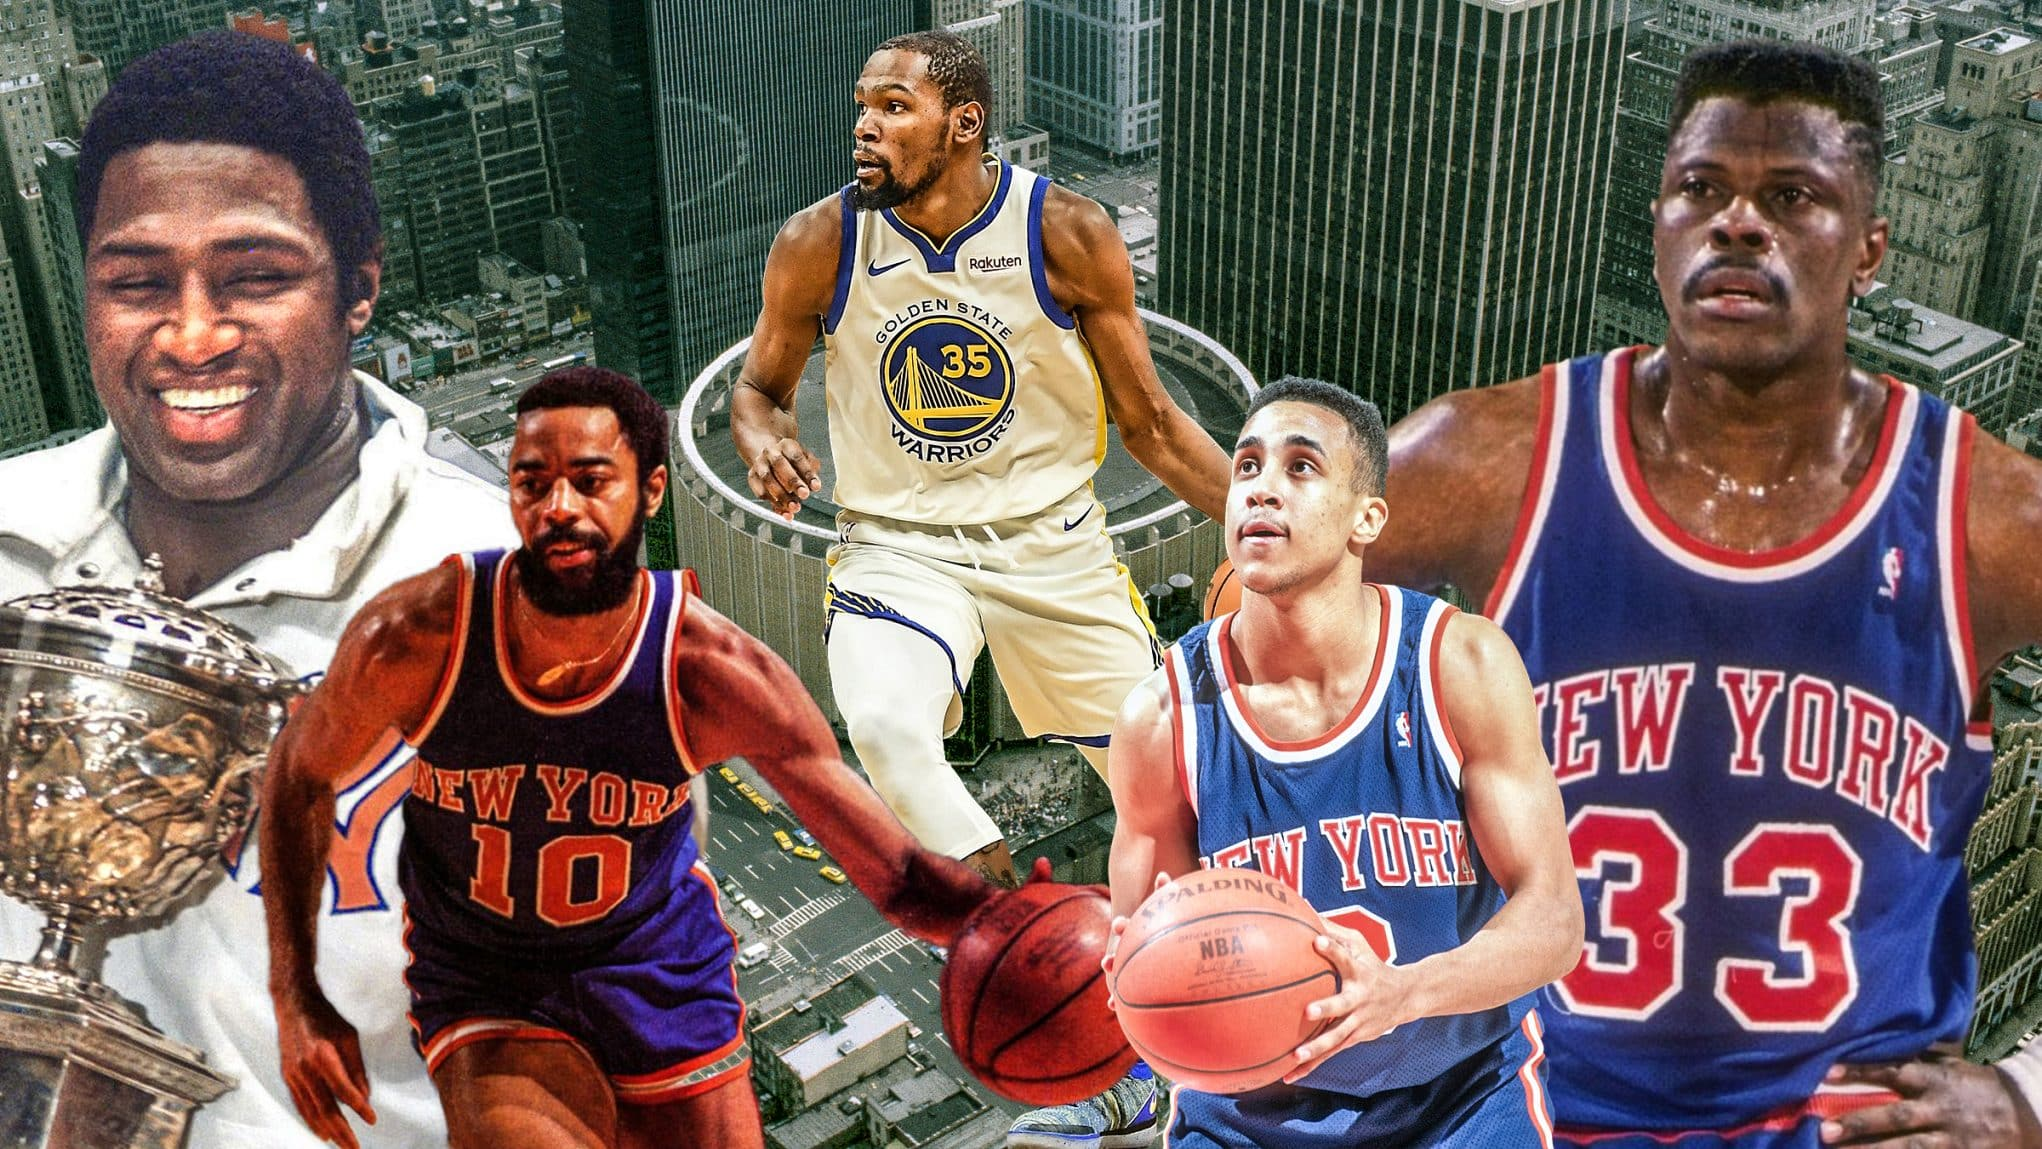 f4c5043594b3 New York Knicks  Kevin Durant dreams contrast with players of yesteryear